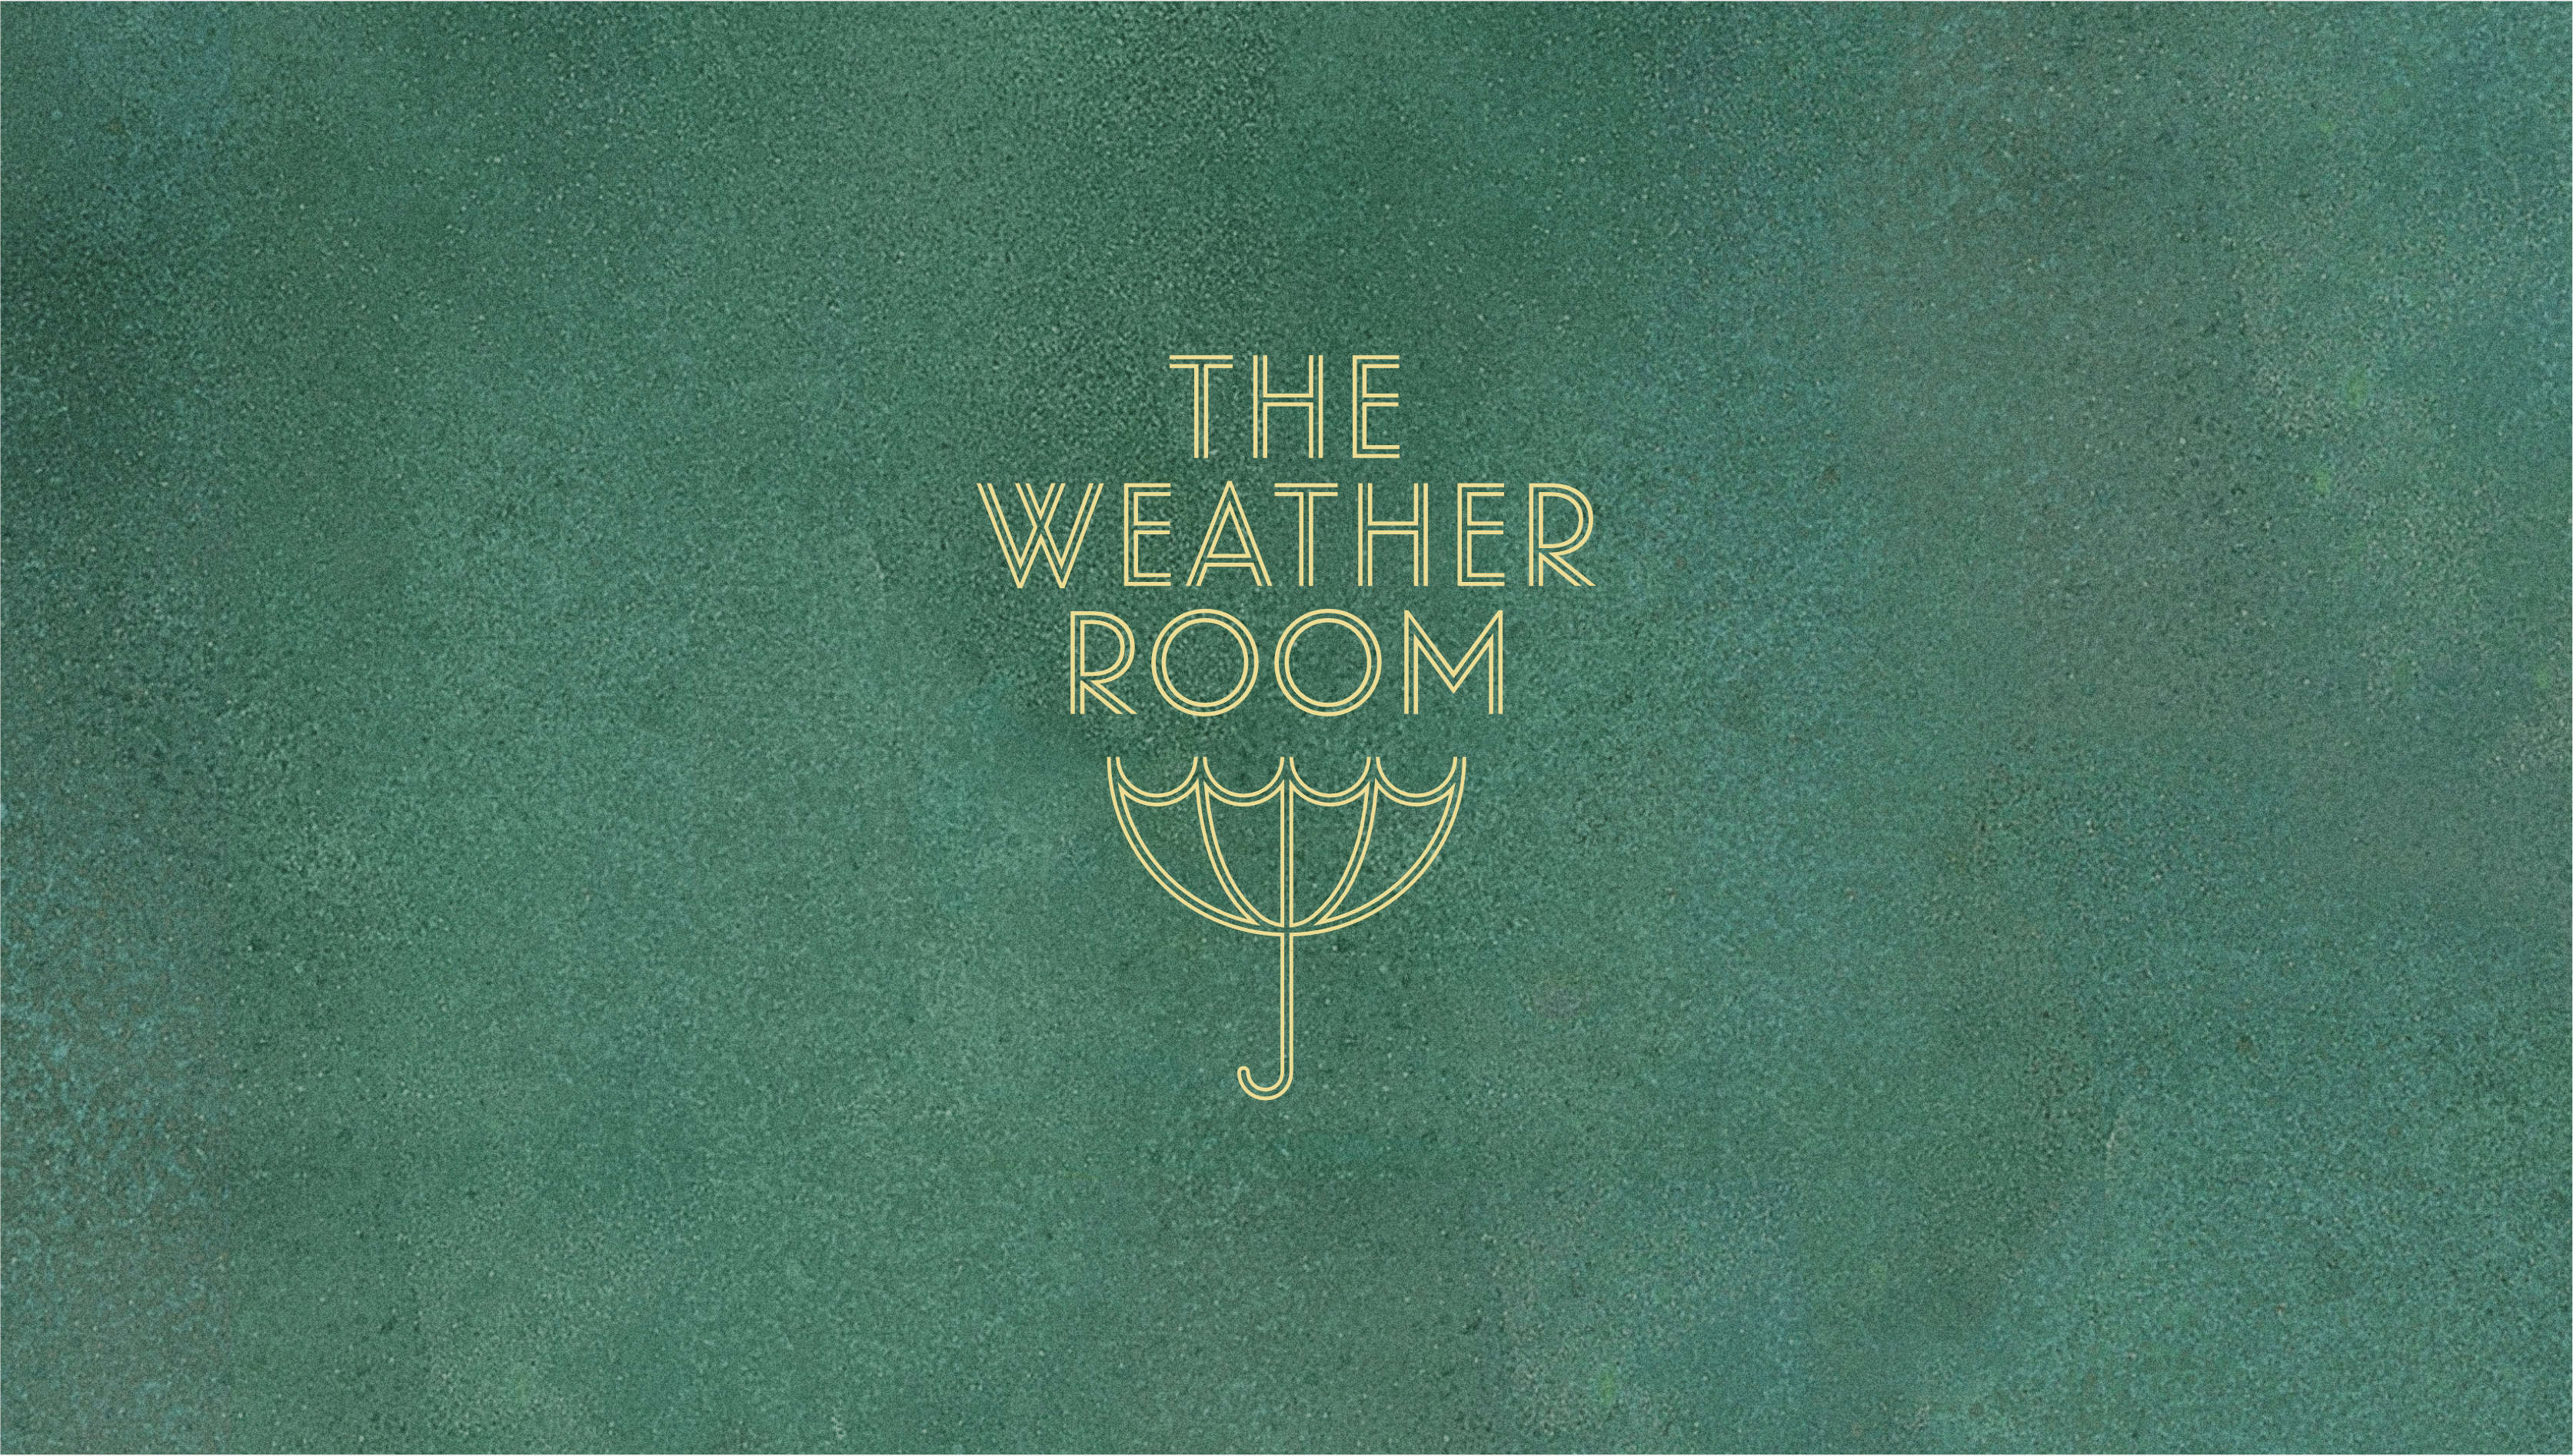 The Weather Room logo on green color field.